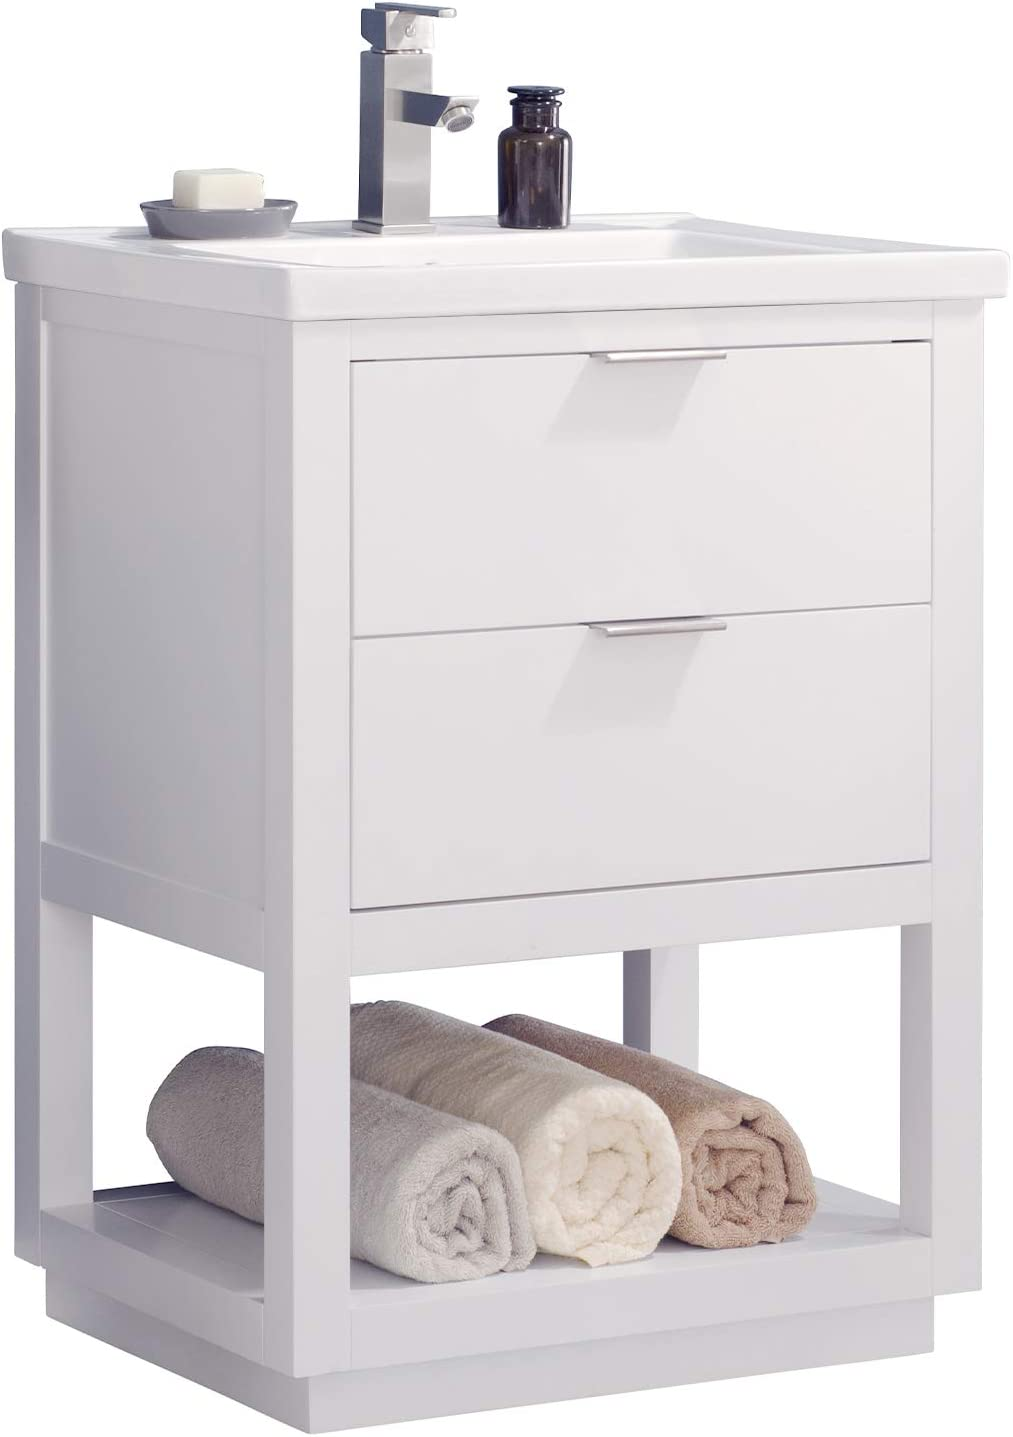 Luca Kitchen Bath LC24GWP Sydney 24 Bathroom Vanity Set in White Made with Hardwood and Integrated Porcelain Top